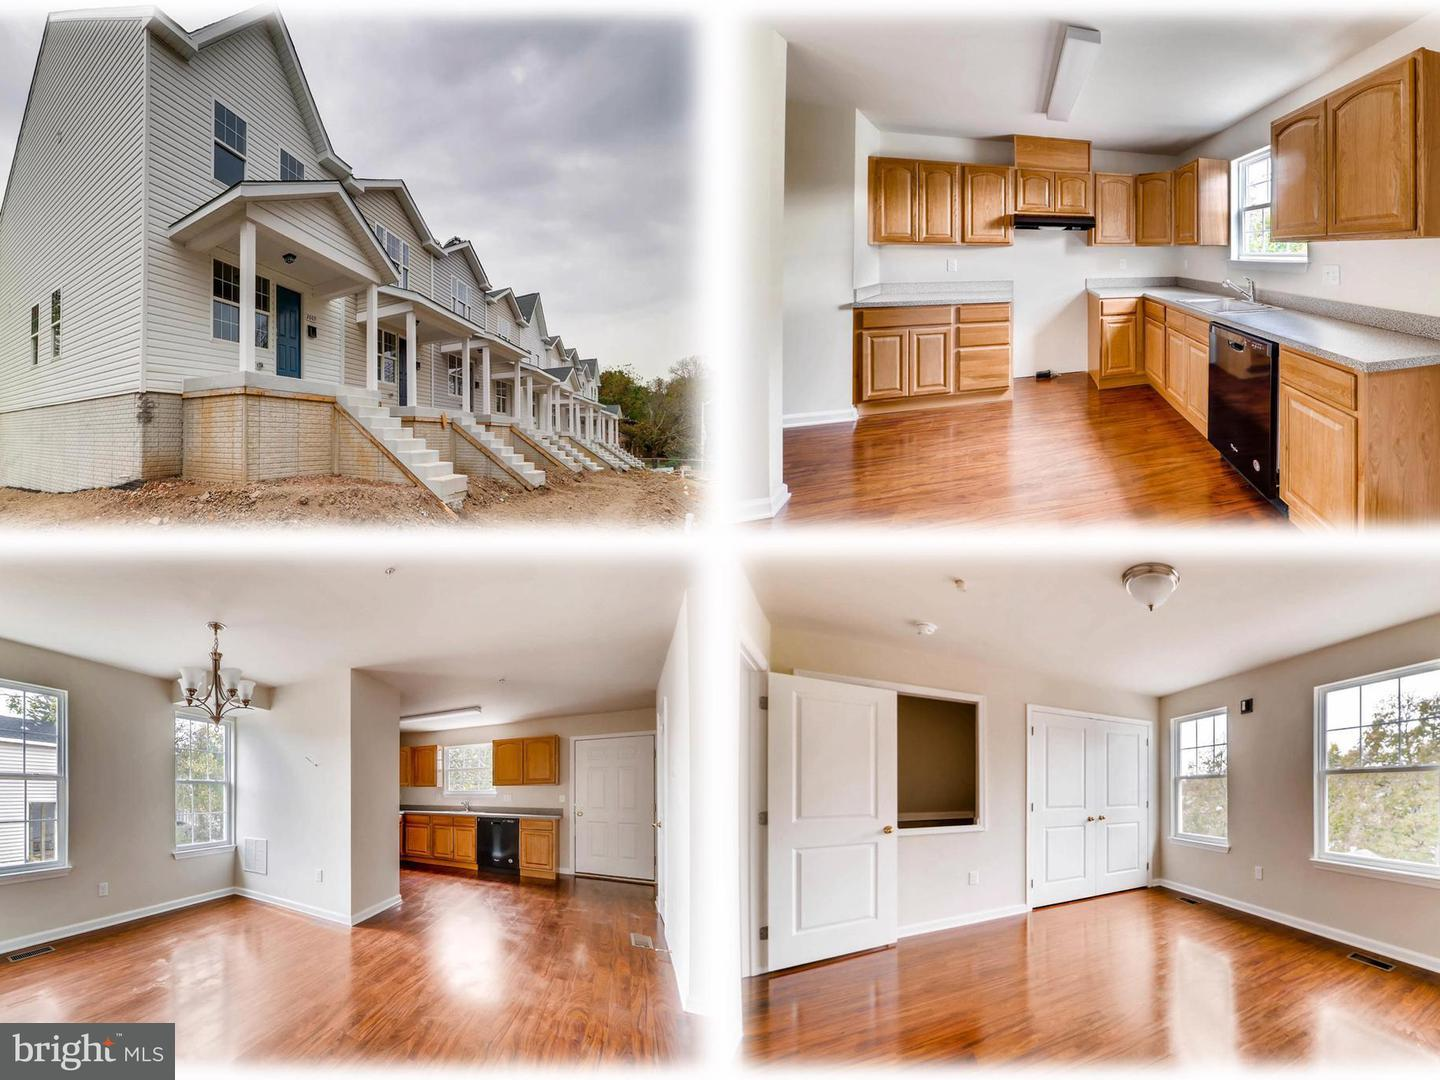 Single Family for Sale at 2609 Huron St Baltimore, Maryland 21230 United States